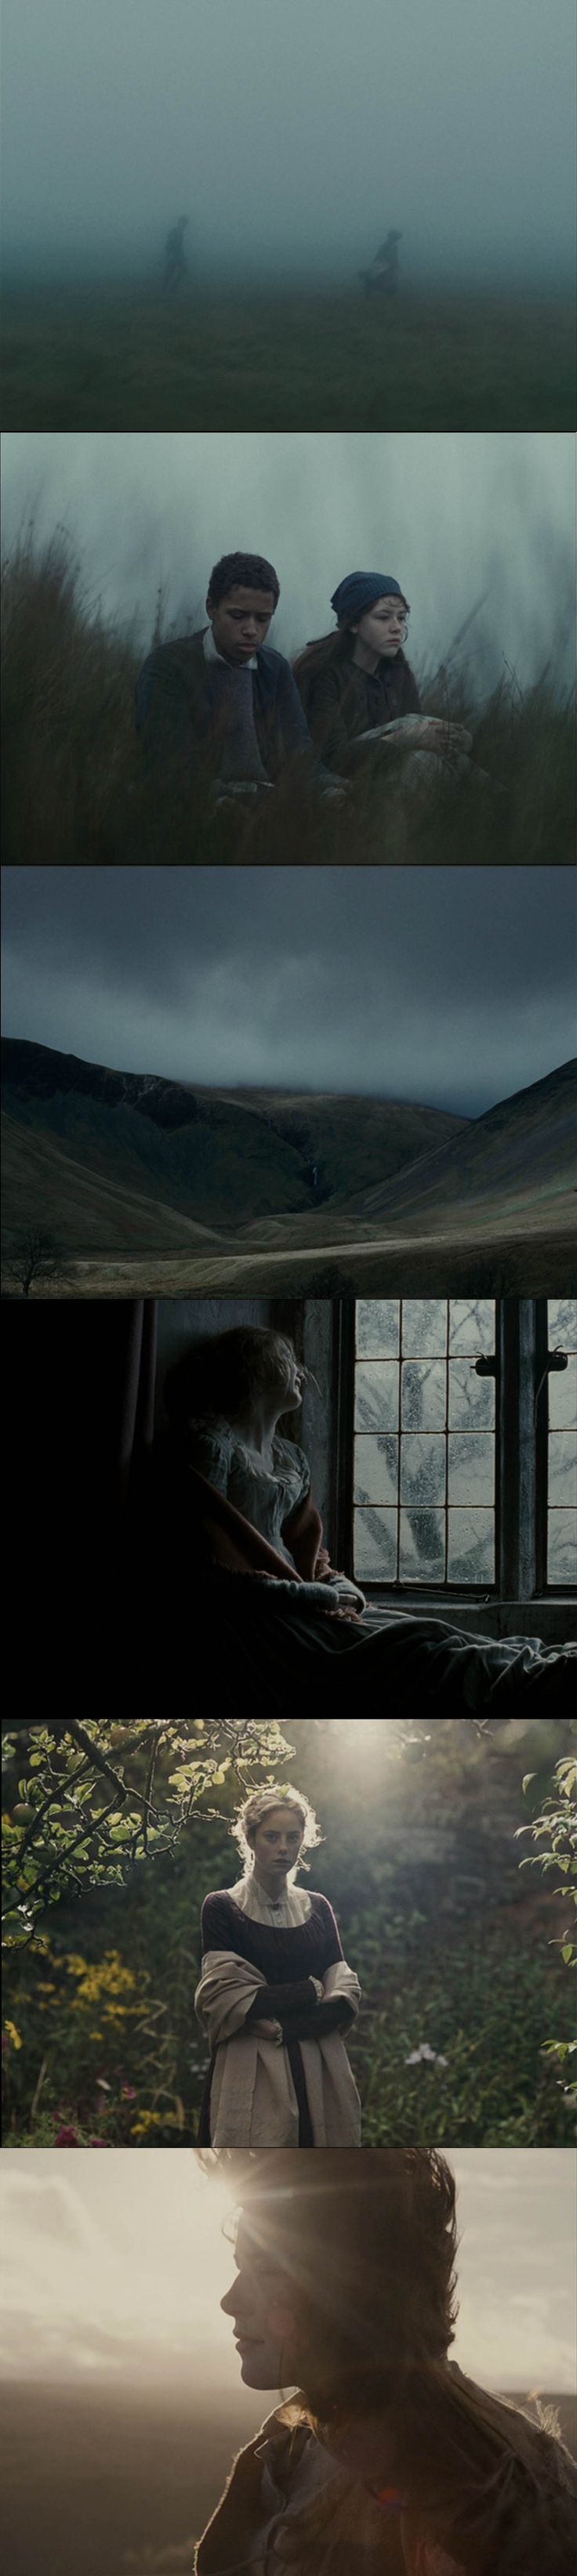 Wuthering Heights (Andrea Arnold, 2011) Cinematography by Robbie Ryan Sources: film-grab.com, bluray.com